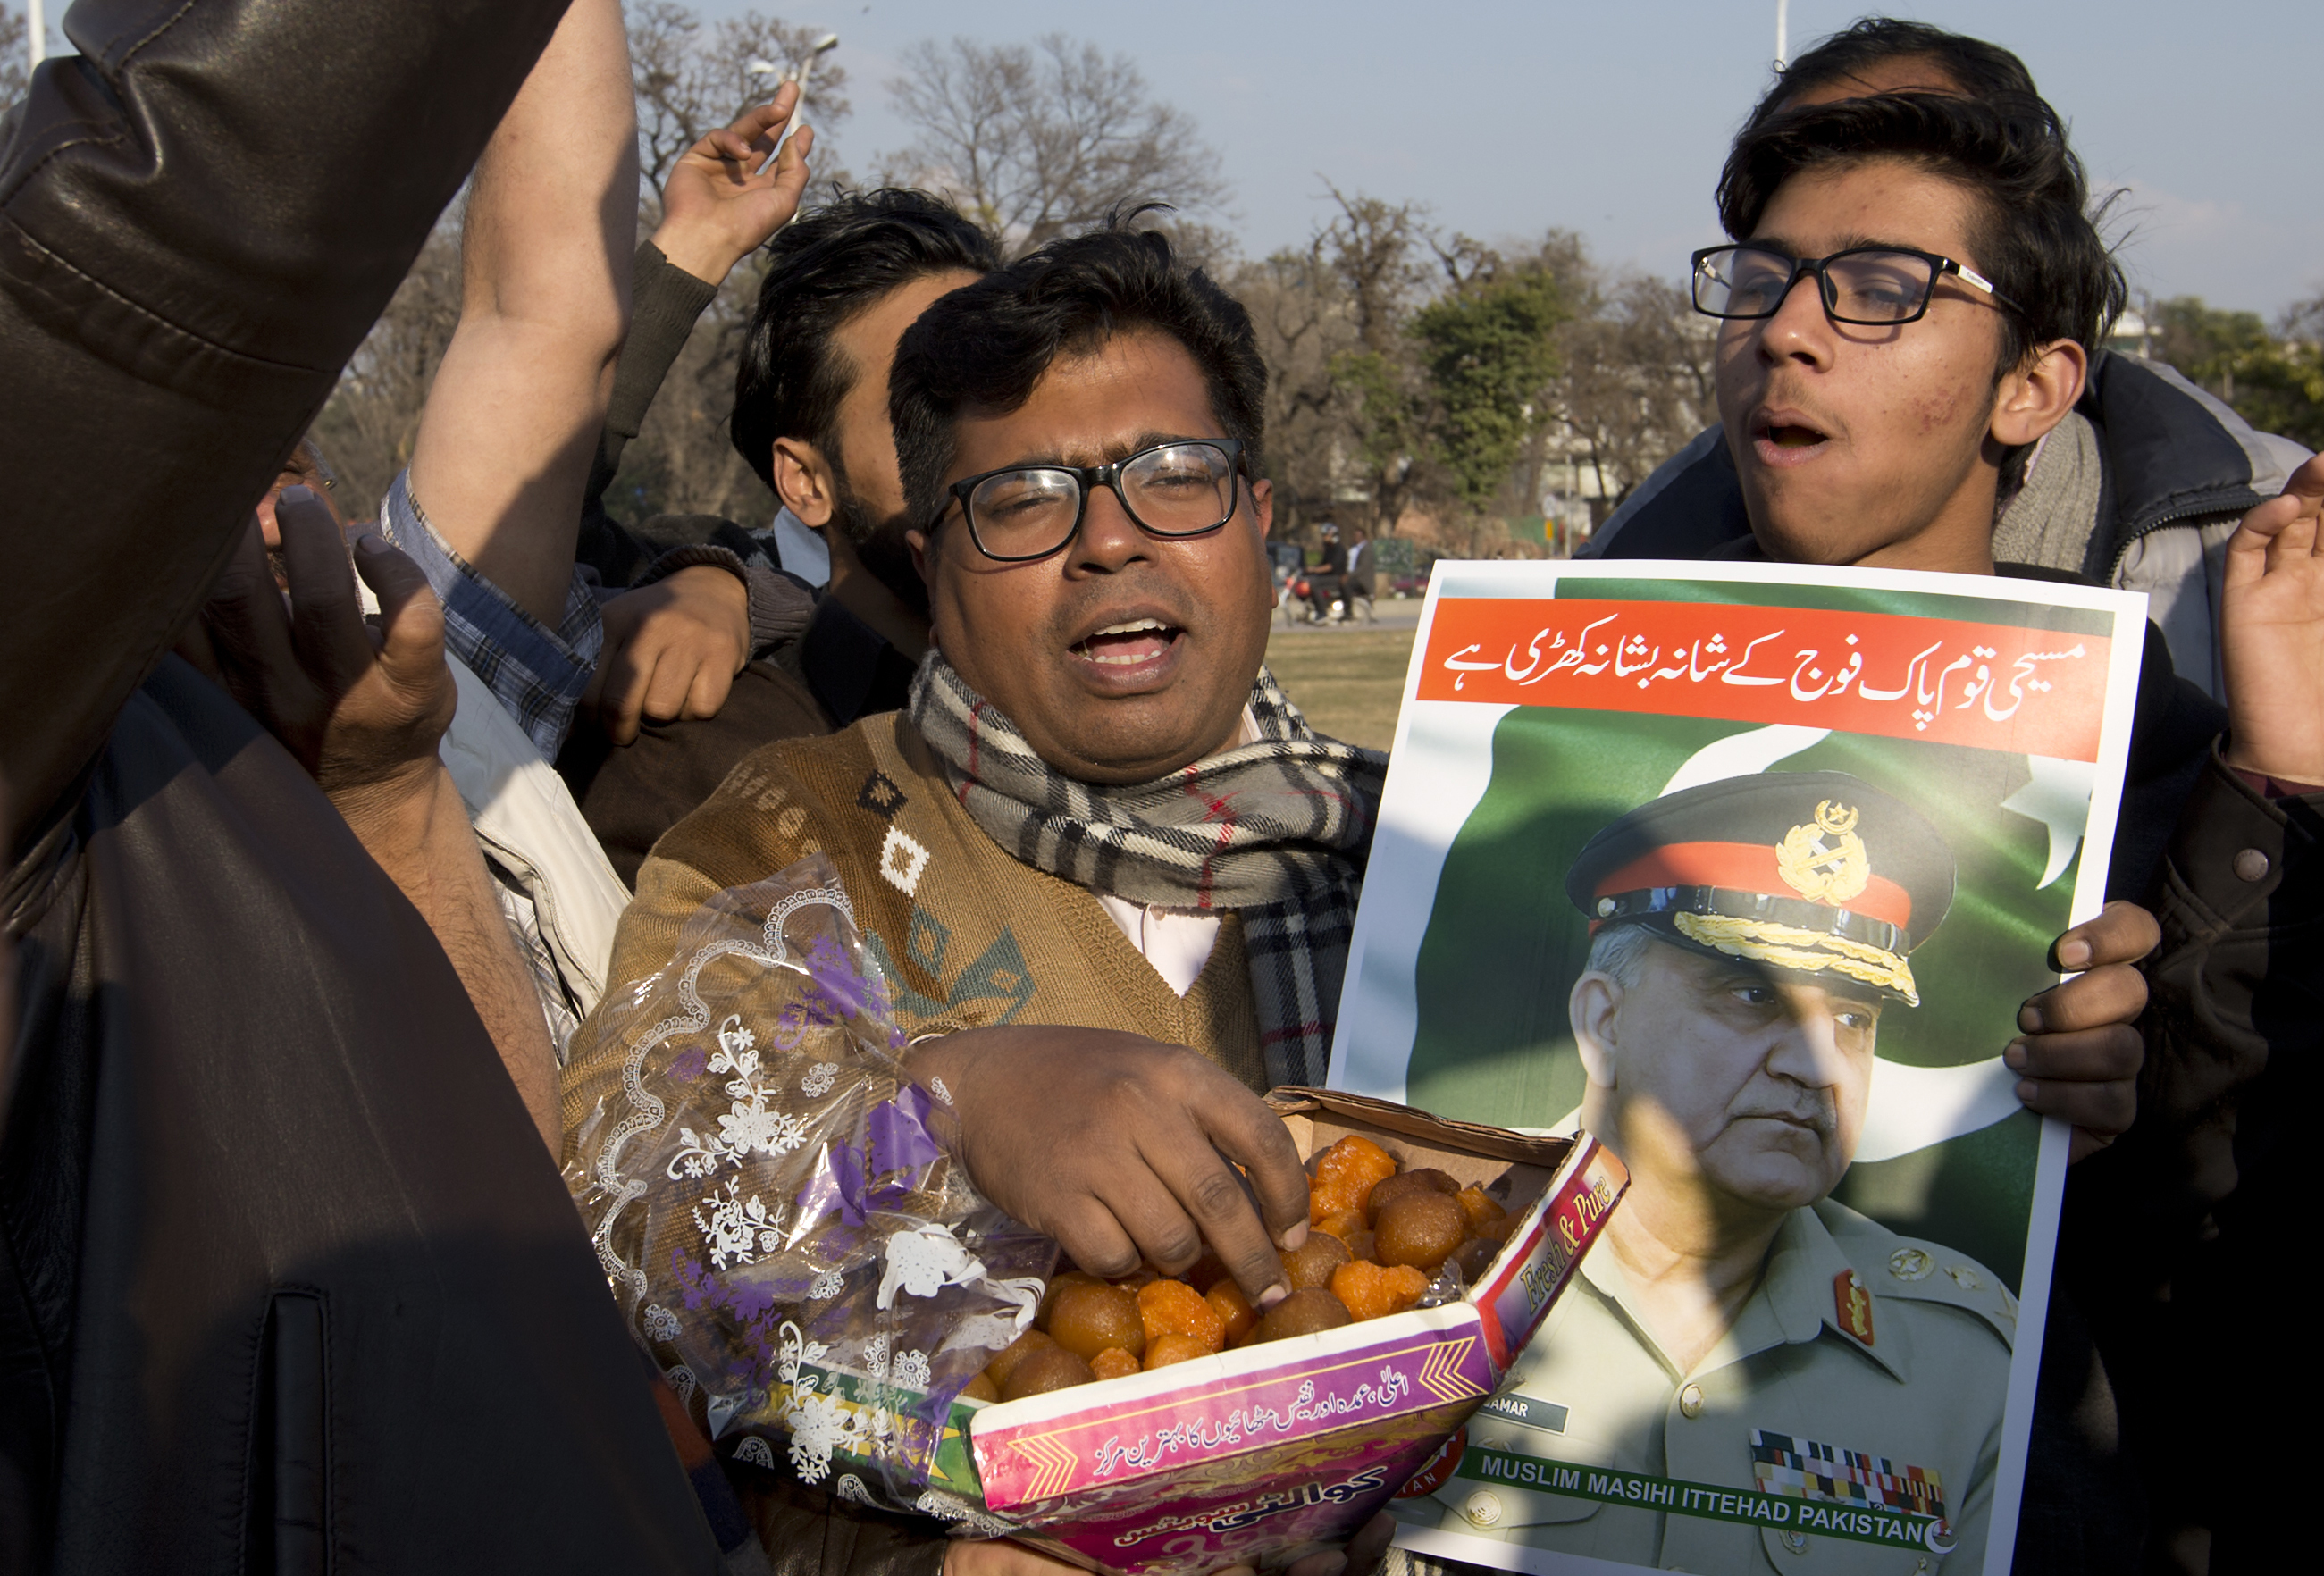 People holding a poster of Pakistani army chief exchange sweets to celebrate the shooting down Indian planes by Pakistani forces, outside in Islamabad, Pakistan, Wednesday, Feb. 27, 2019. Pakistan's military said Wednesday it shot down two Indian warplanes in the disputed region of Kashmir and captured two pilots, raising tensions between the nuclear-armed rivals to a level unseen in 20 years. (AP Photo/B.K. Bangash)